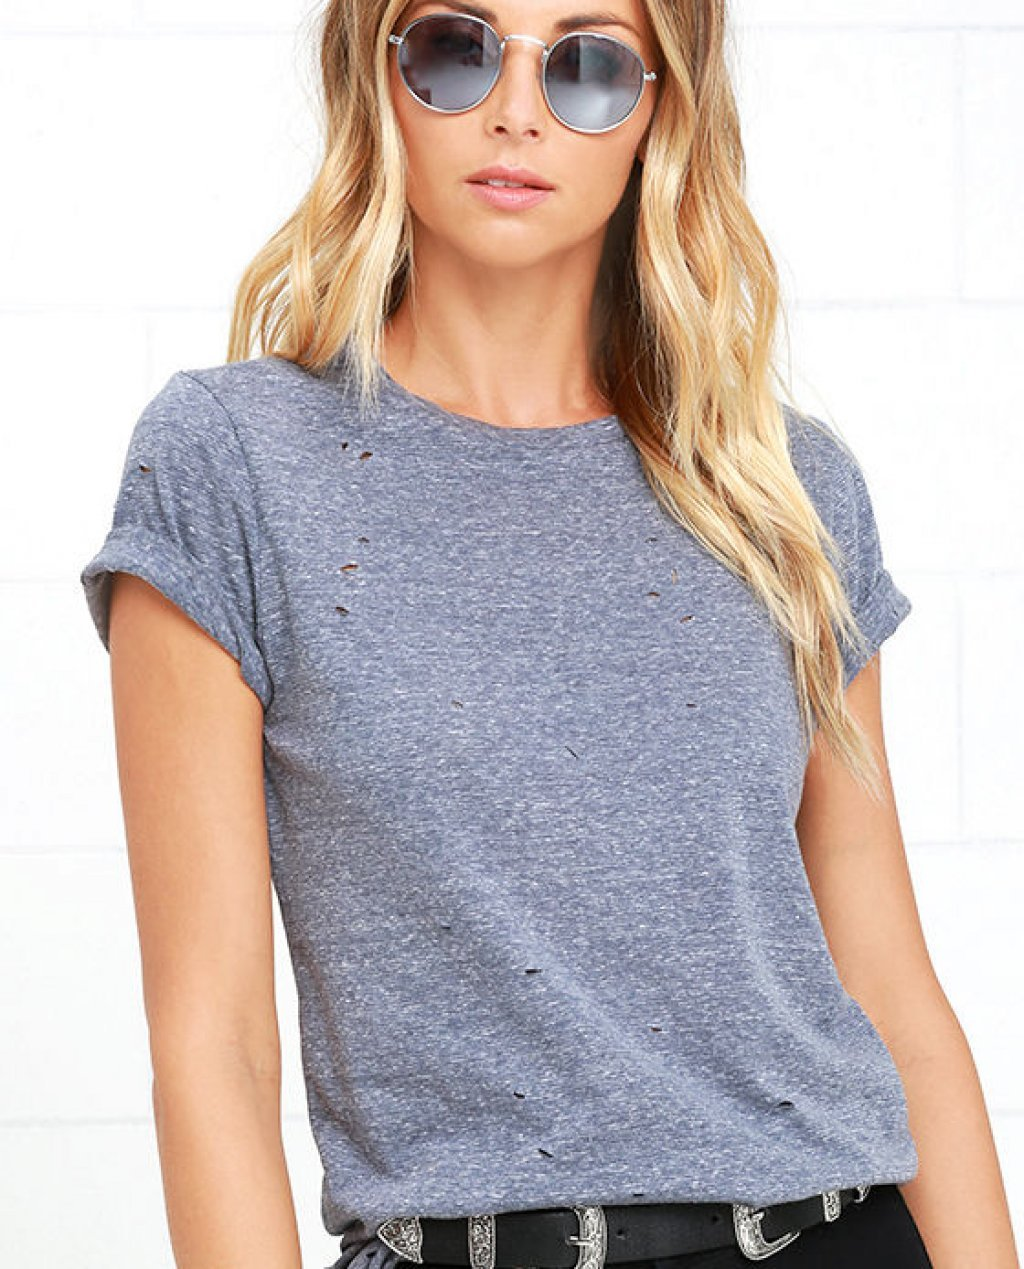 In the Raw Distressed Heather Slate Blue Tee